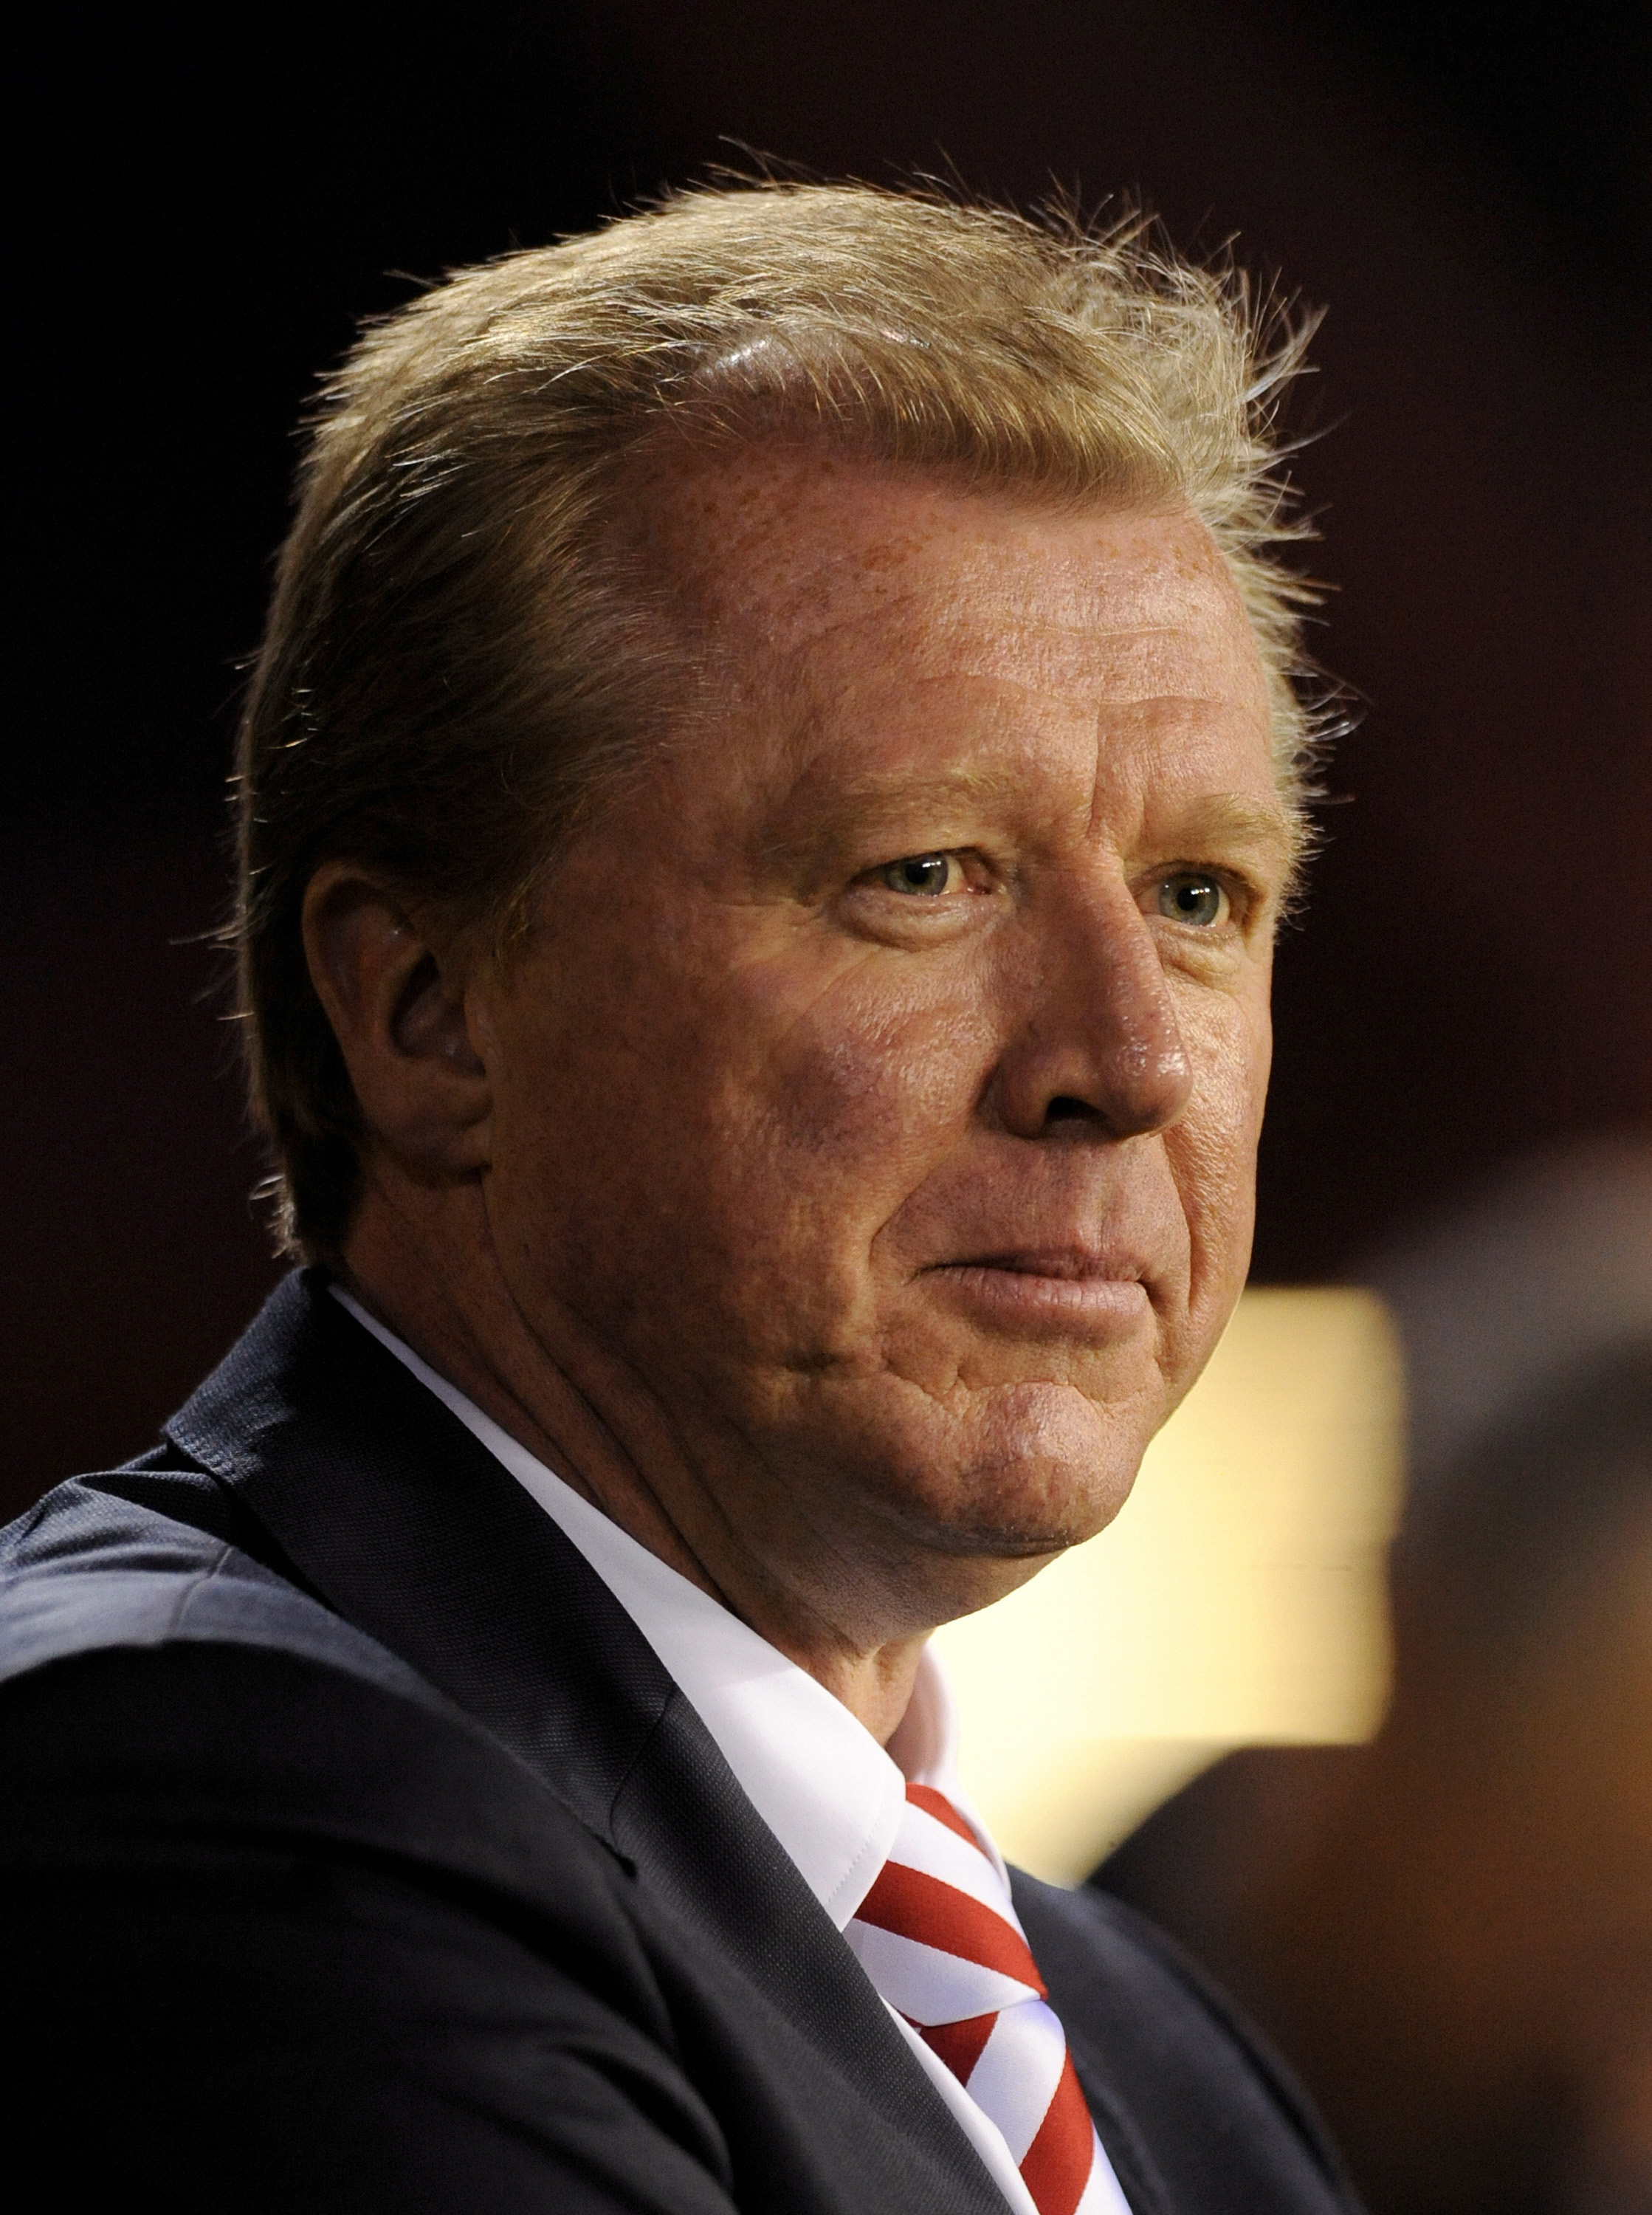 DERBY MANAGER: Steve McClaren, who came through the county sports system in North Yorkshire.